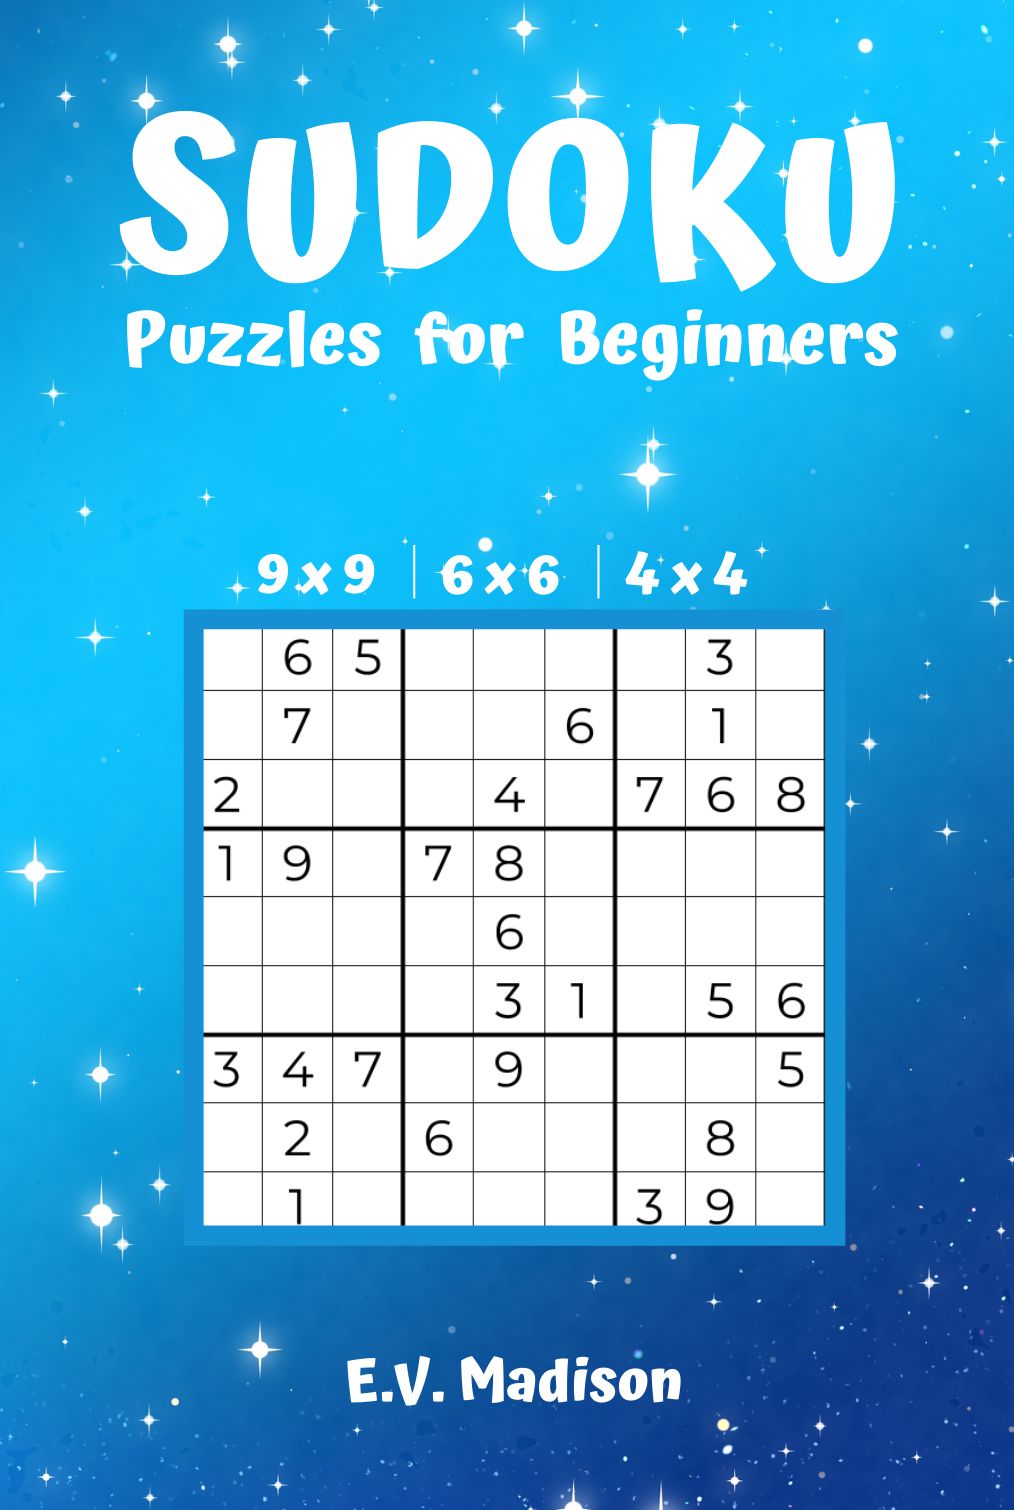 SUDOKU Puzzles for Beginners